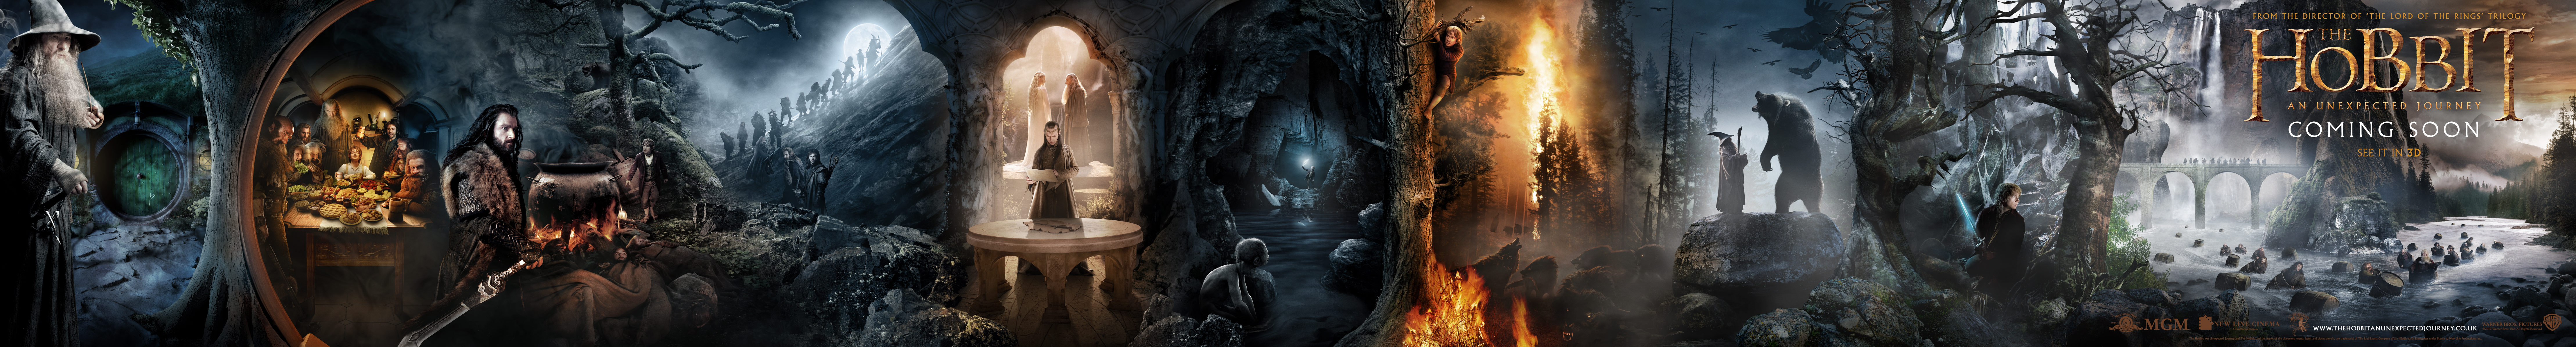 new hobbit banner reveals clues to movie adaptation wired